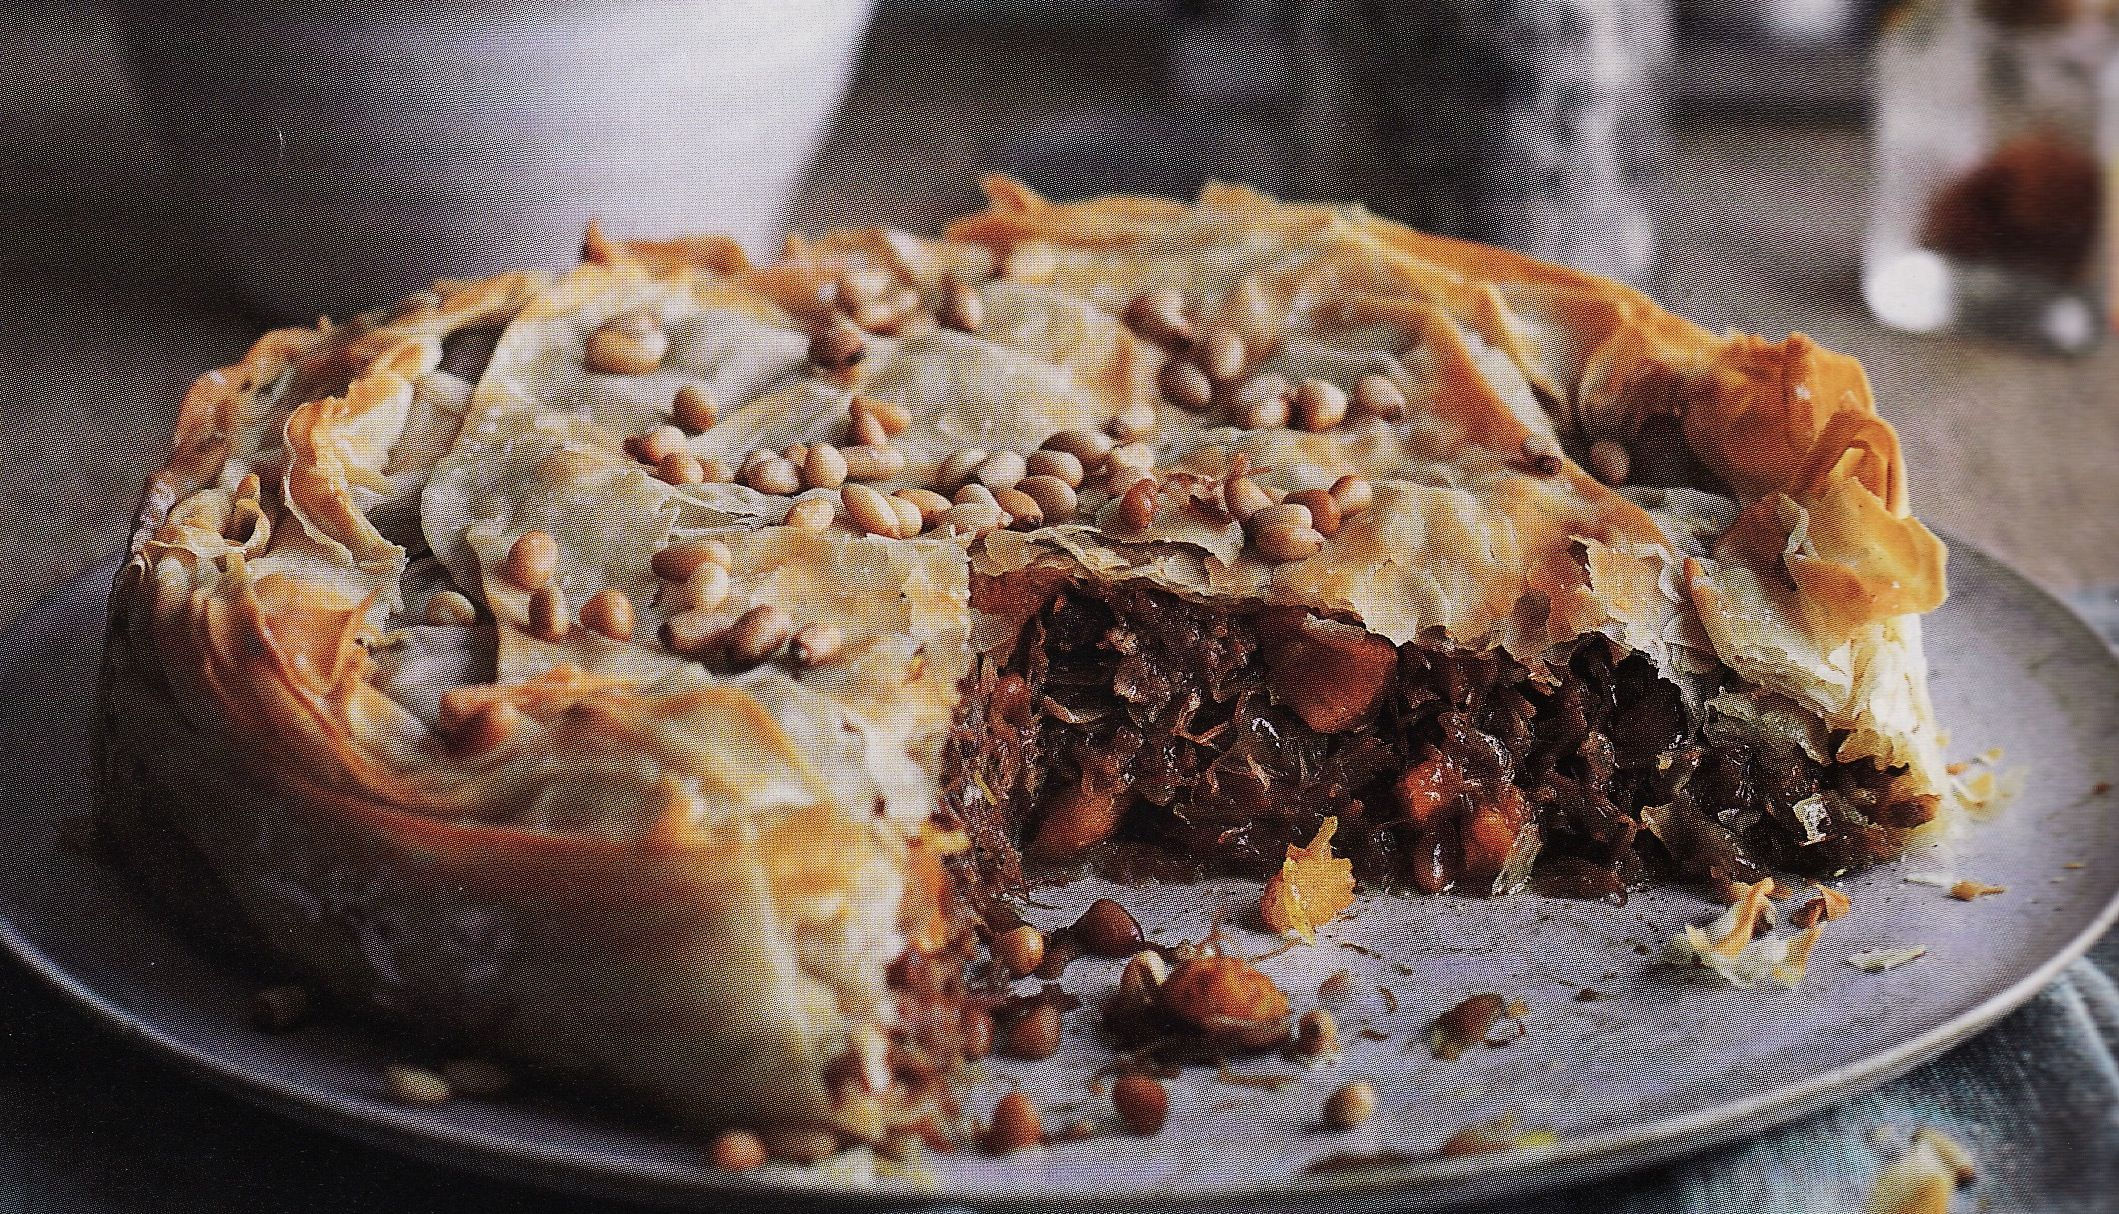 Pastilla - Spanish-moroccan version. Made with pigeon meat and couscous